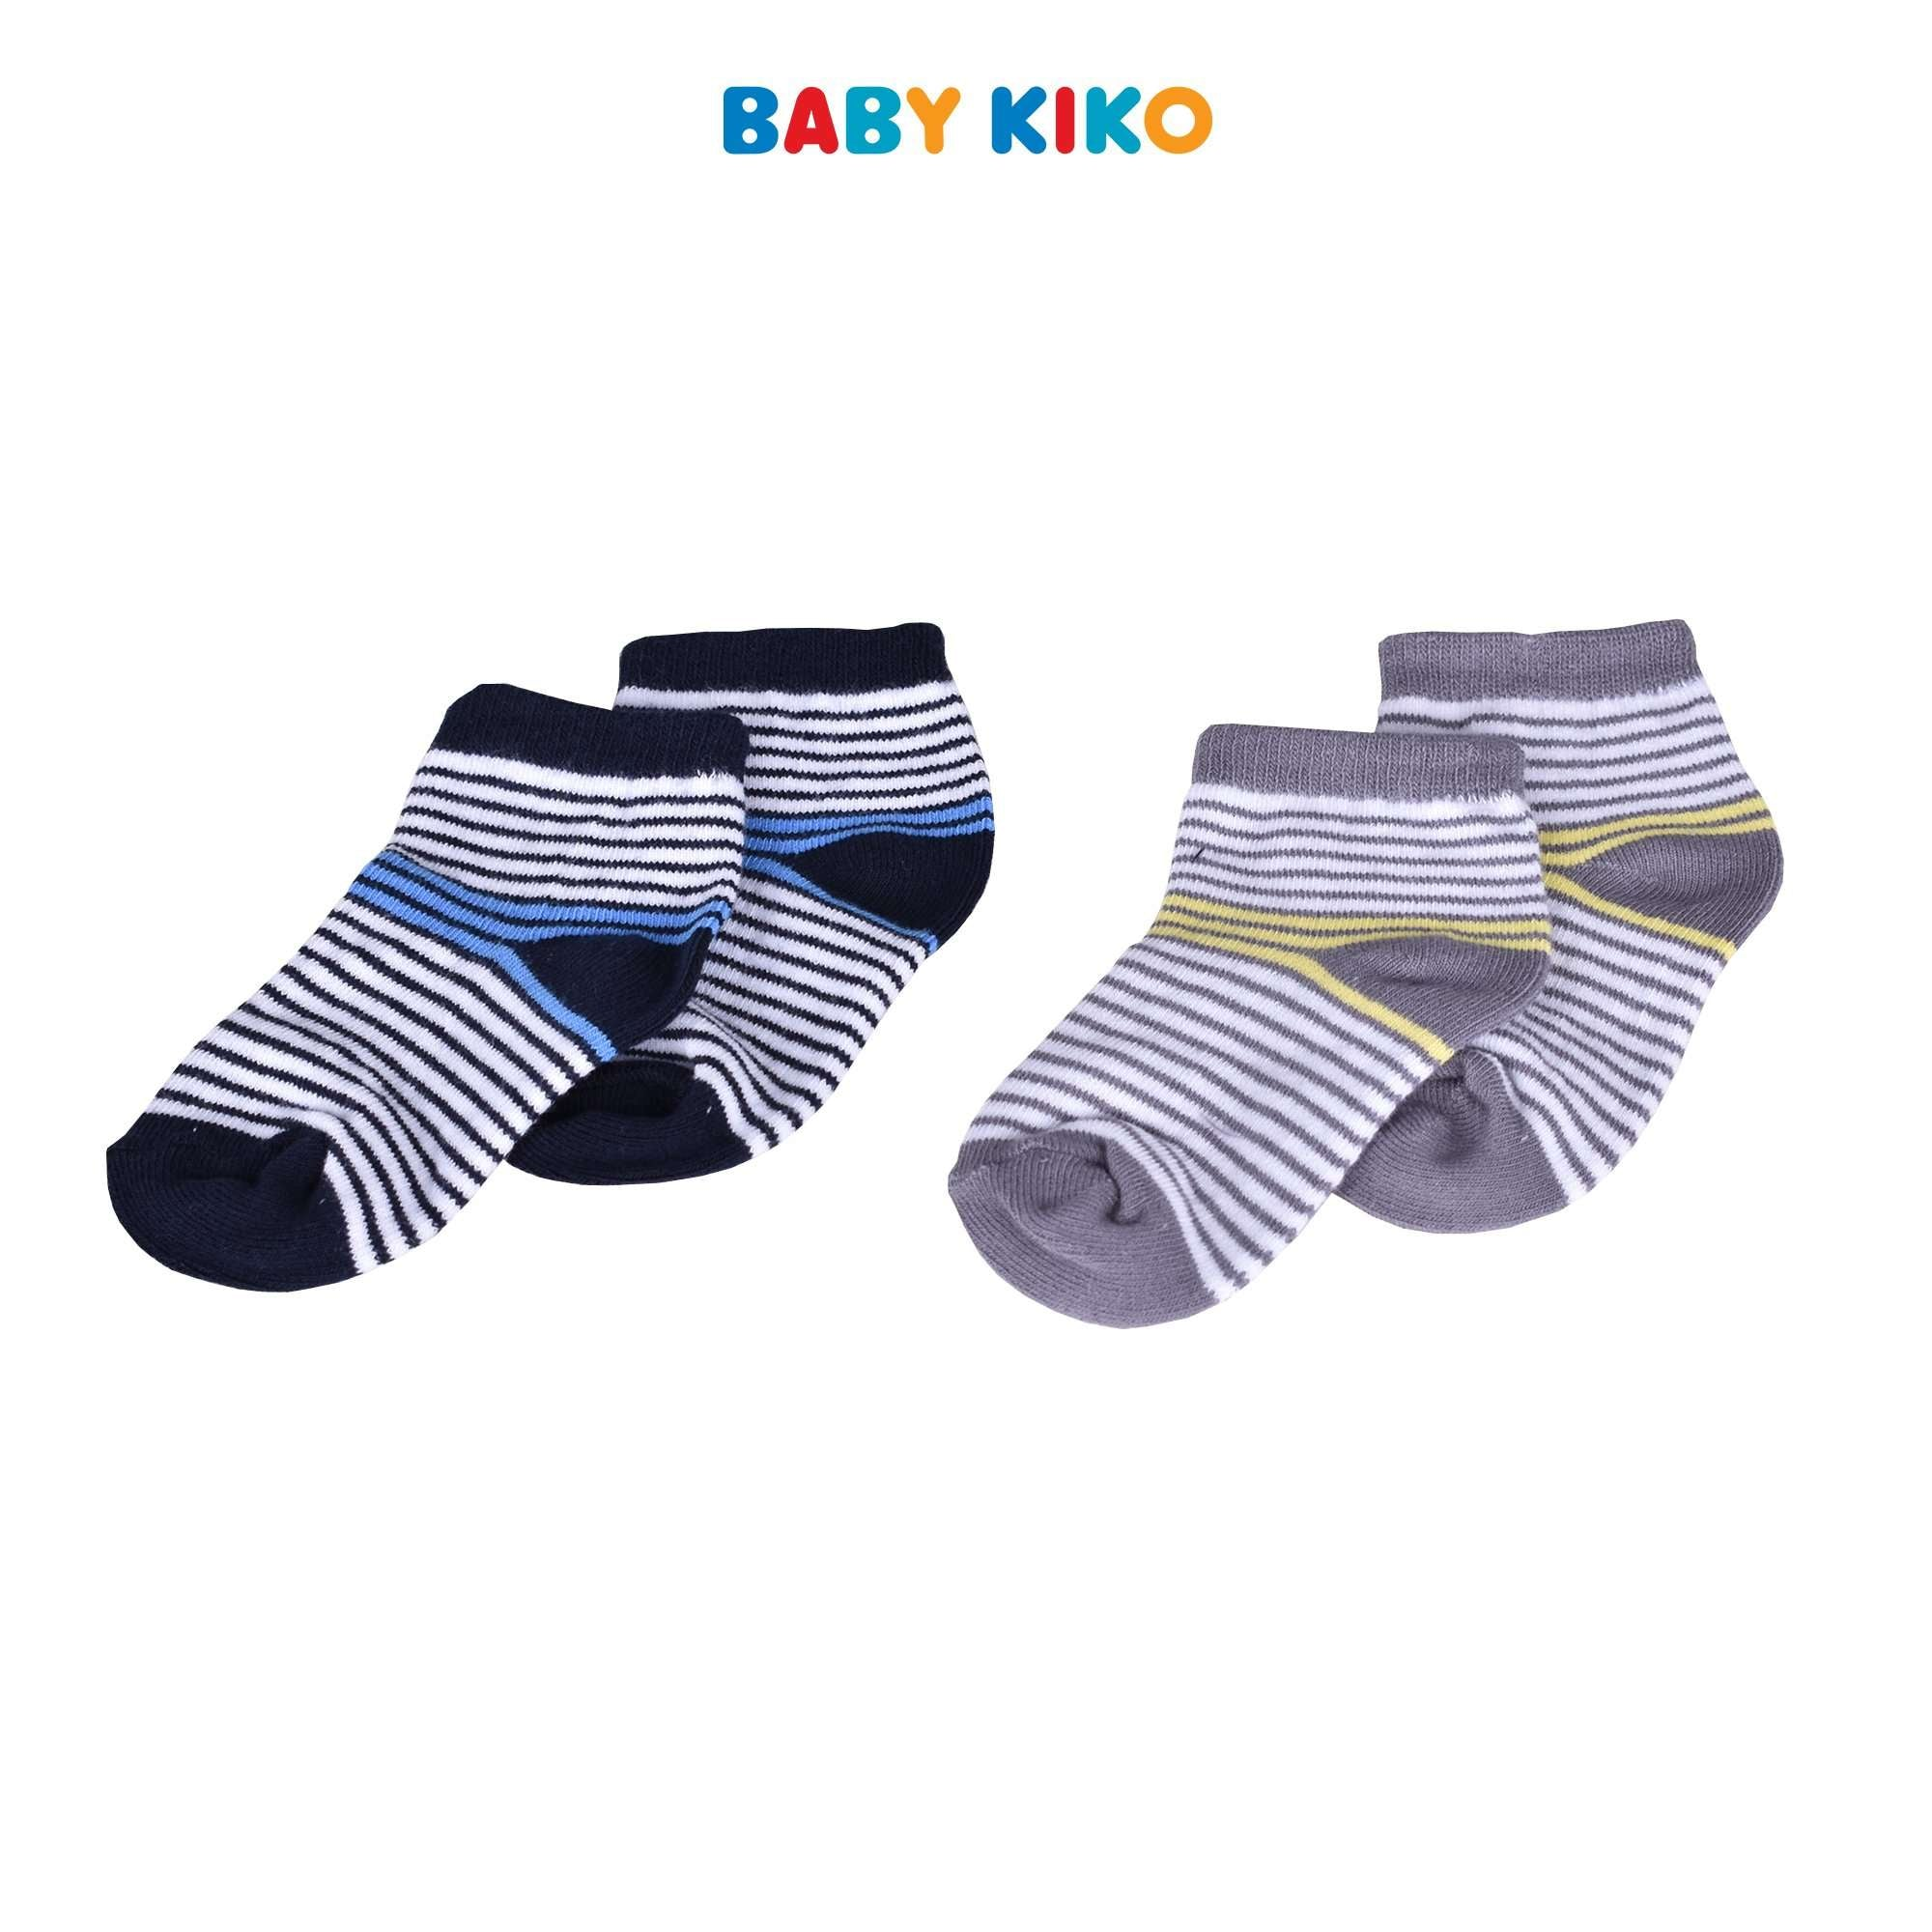 Baby KIKO Baby Boy Ankle Height Socks 320138-753 : Buy Baby KIKO online at CMG.MY